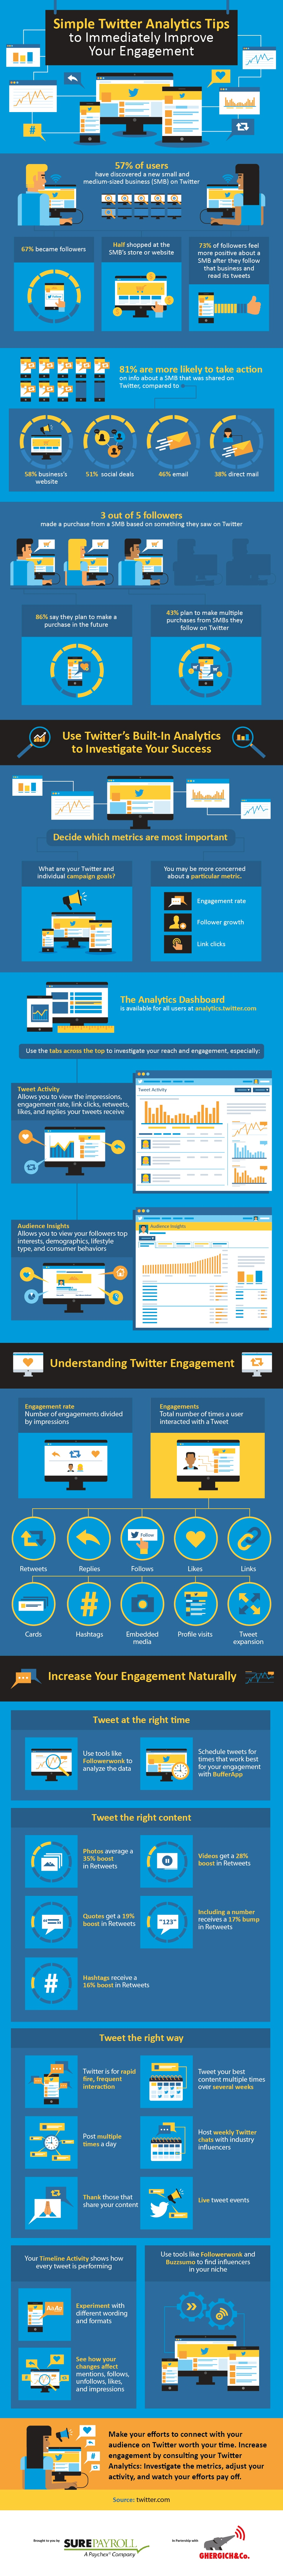 https://i2.wp.com/effectiveinboundmarketing.com/wp-content/uploads/2017/06/simple-twitter-analytics-tips_infographic.jpg?fit=960%2C8734